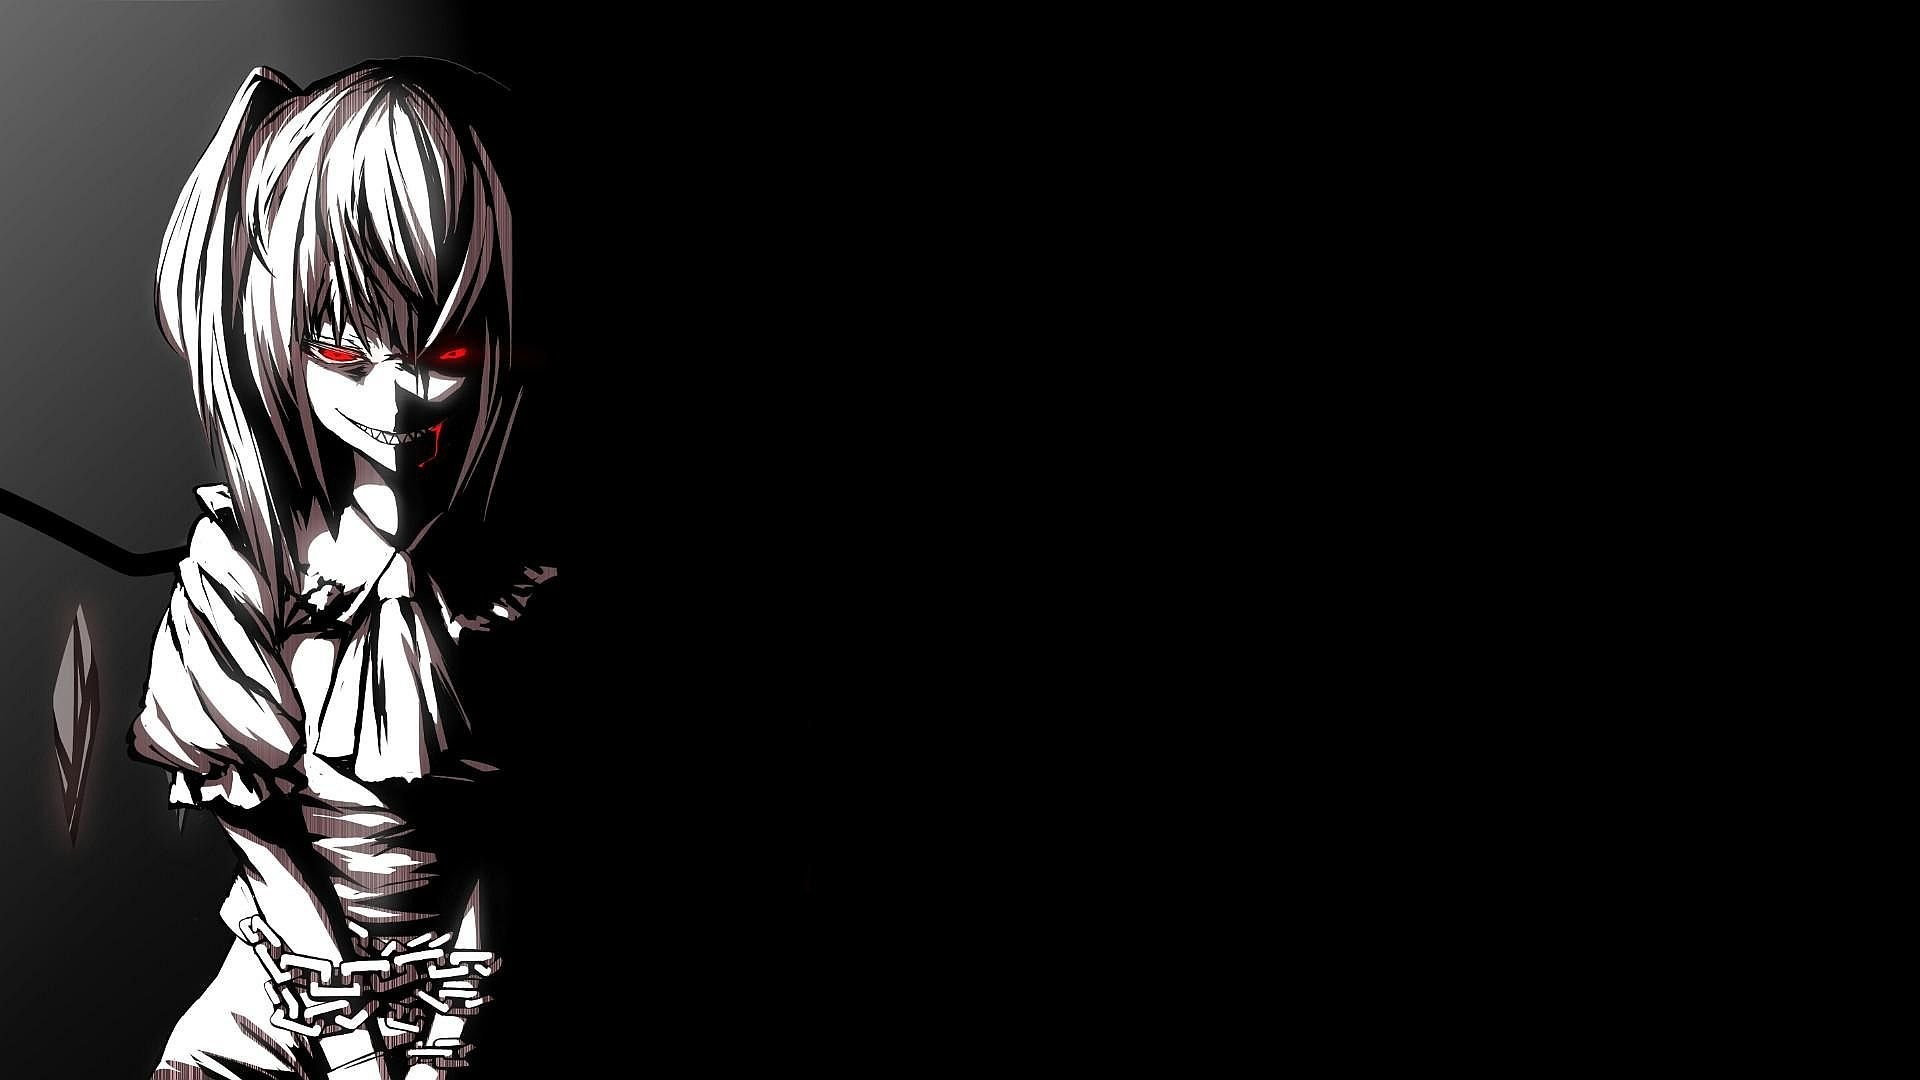 Black Anime Wallpaper 60 Images